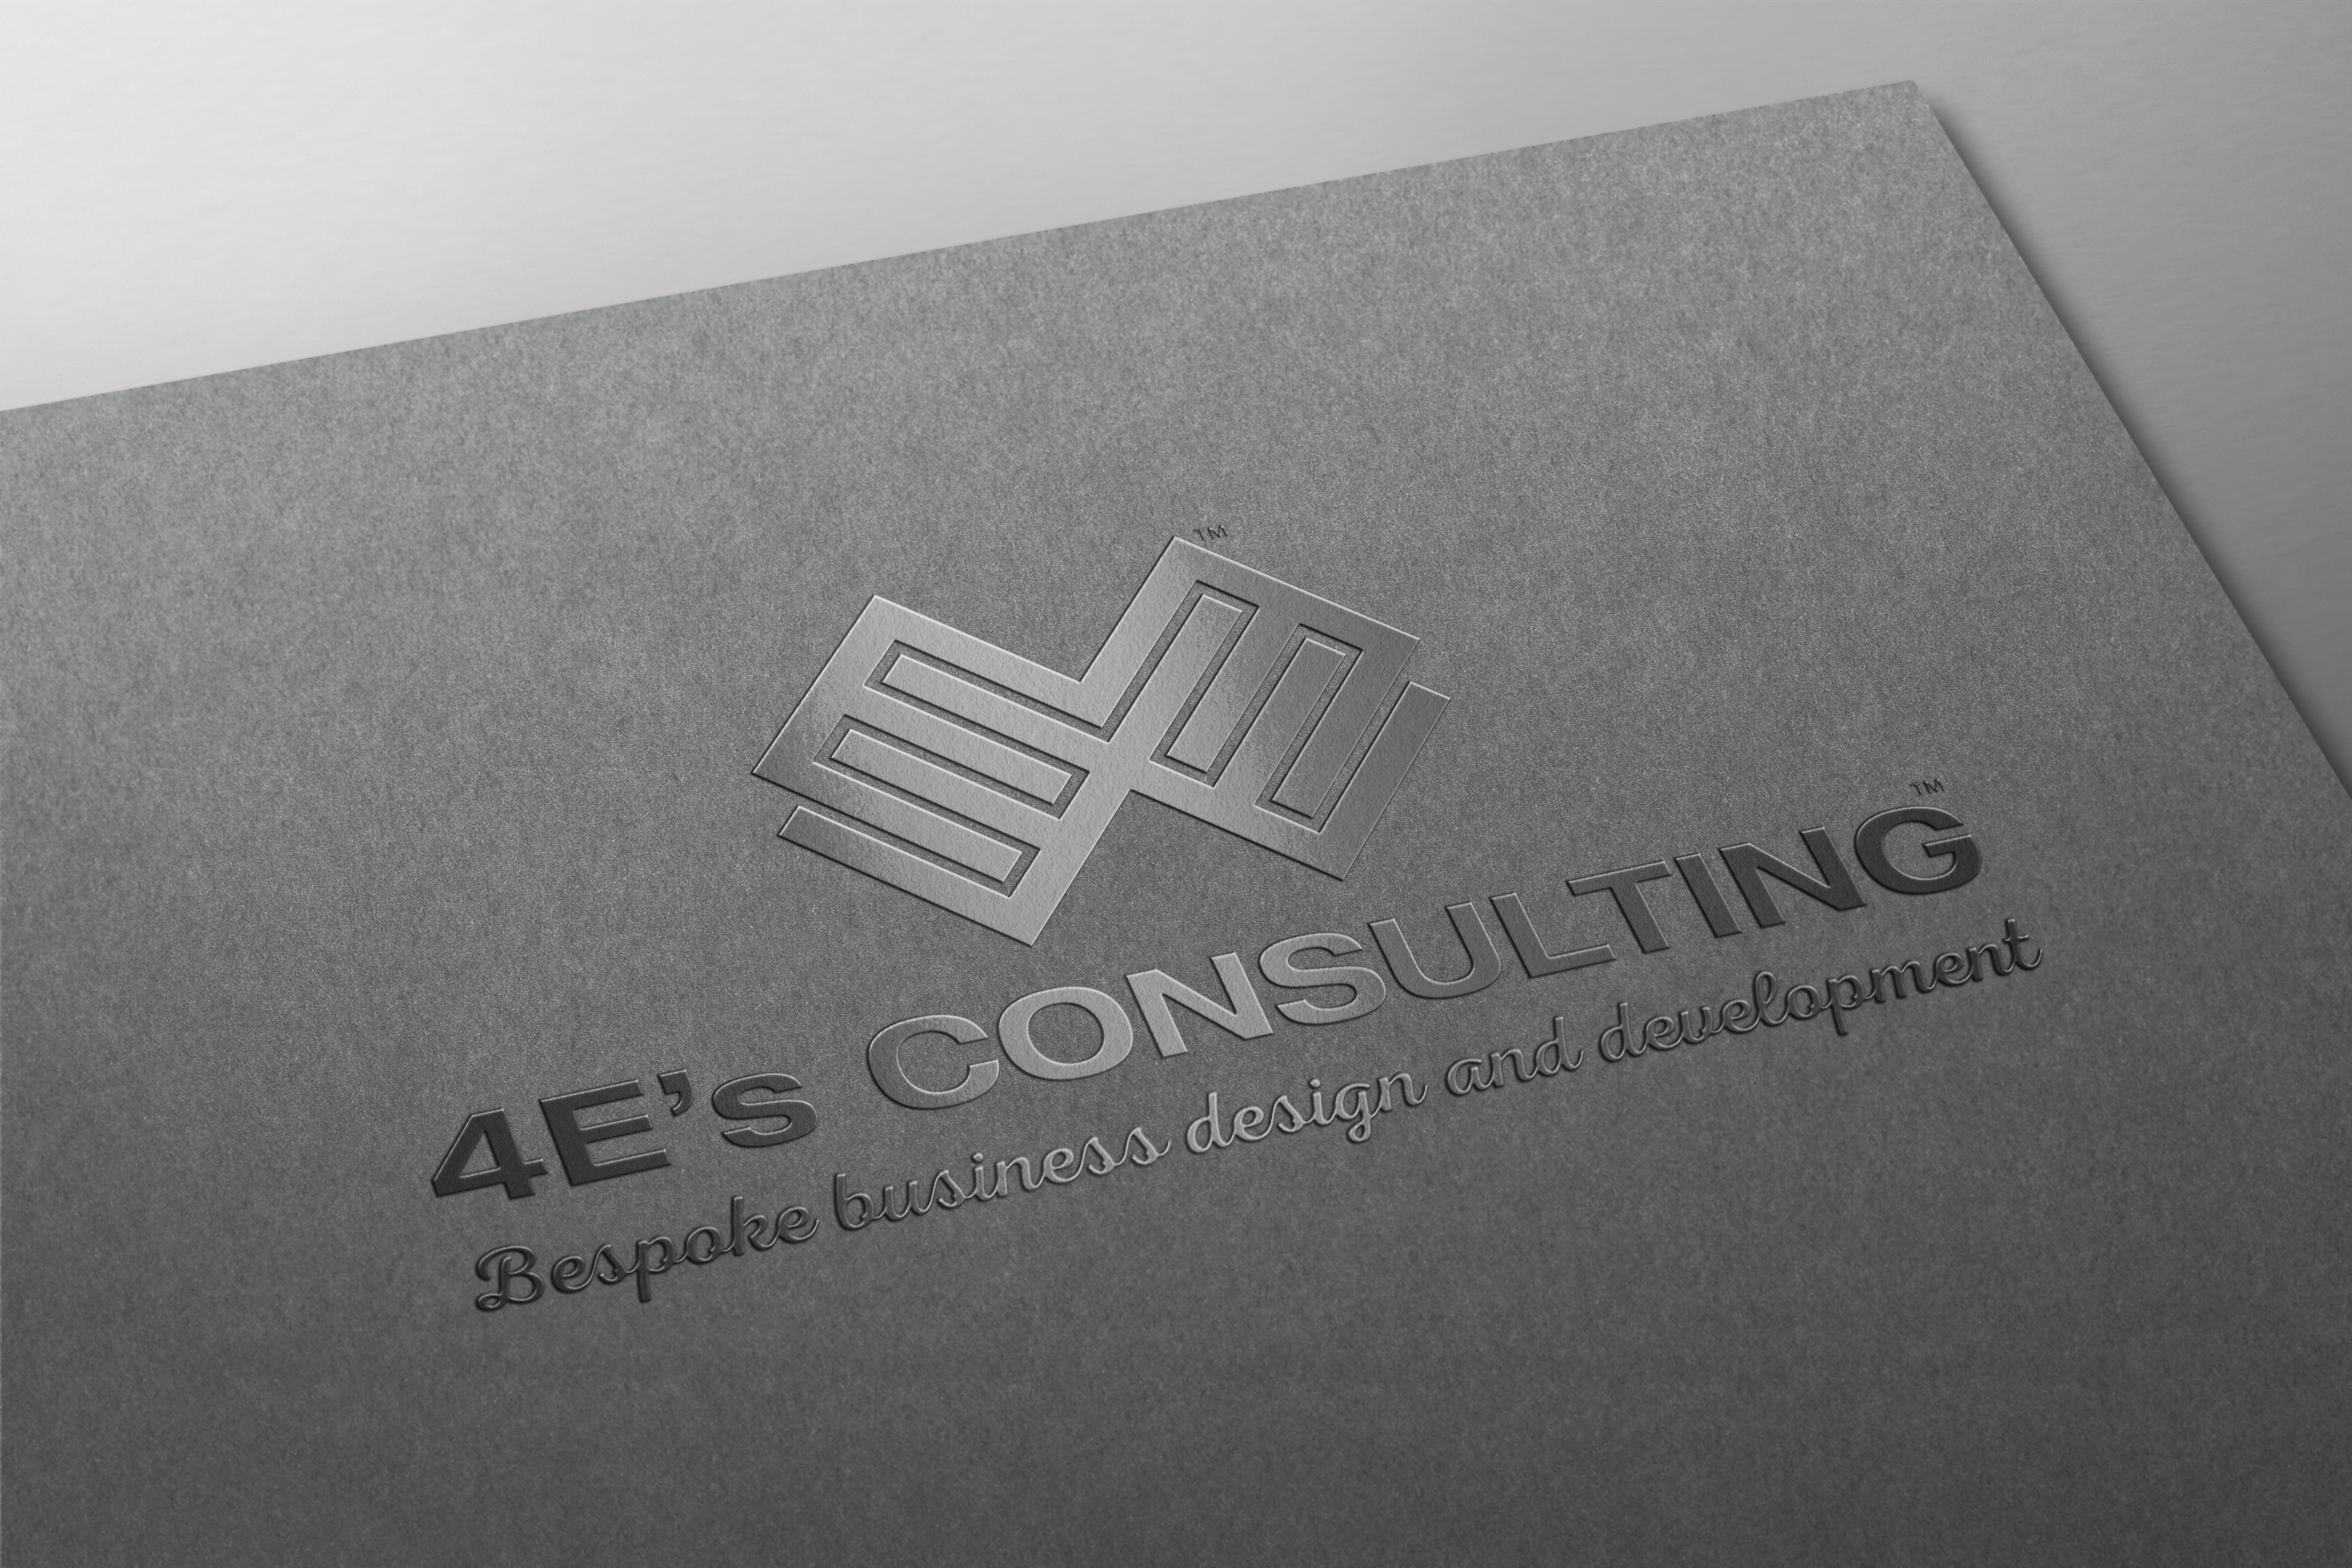 Spot UV & Foil Stamped 4E's Consulting bespoke business consultants